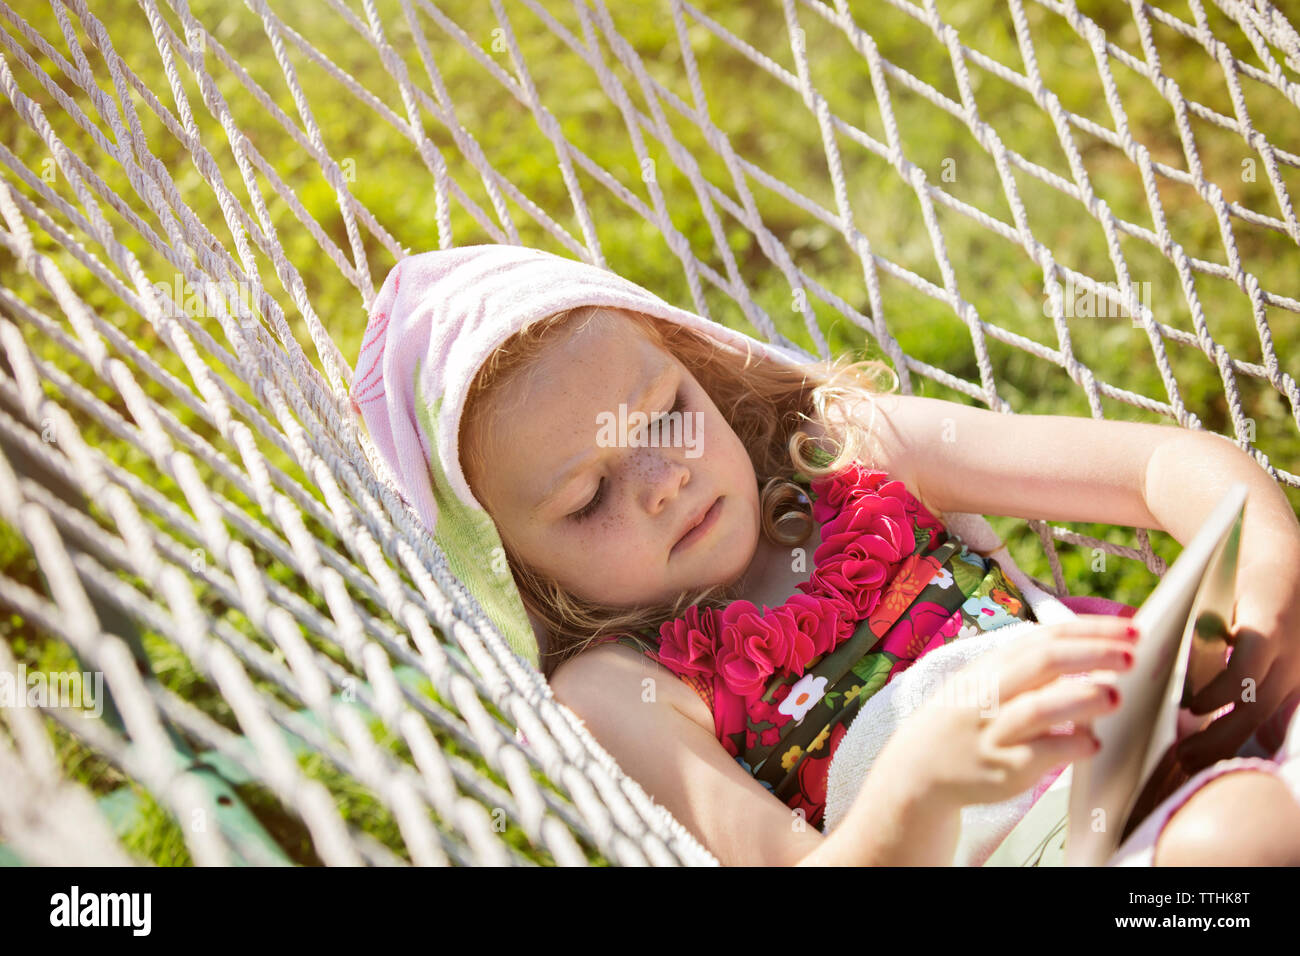 Girl reading book while lying in hammock - Stock Image